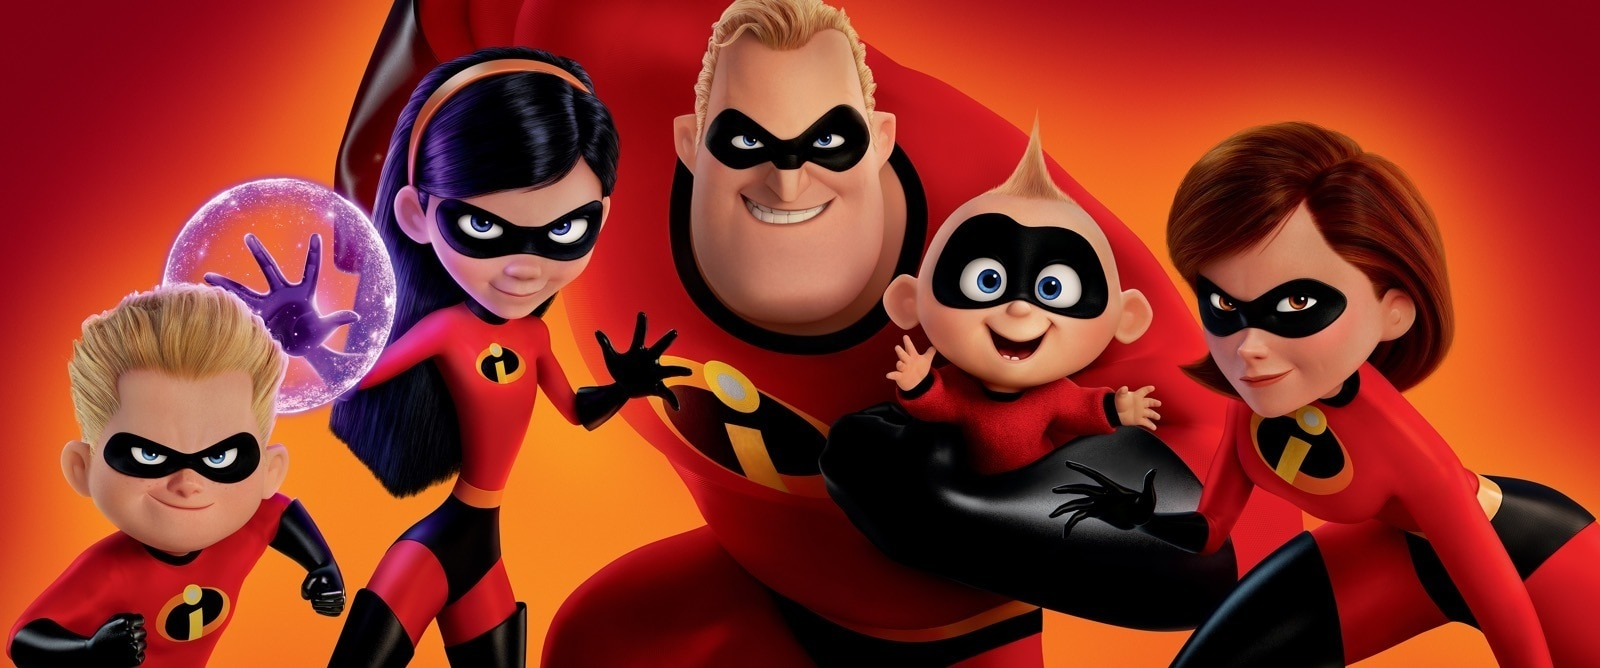 Incredibles 2 | Meet the characters